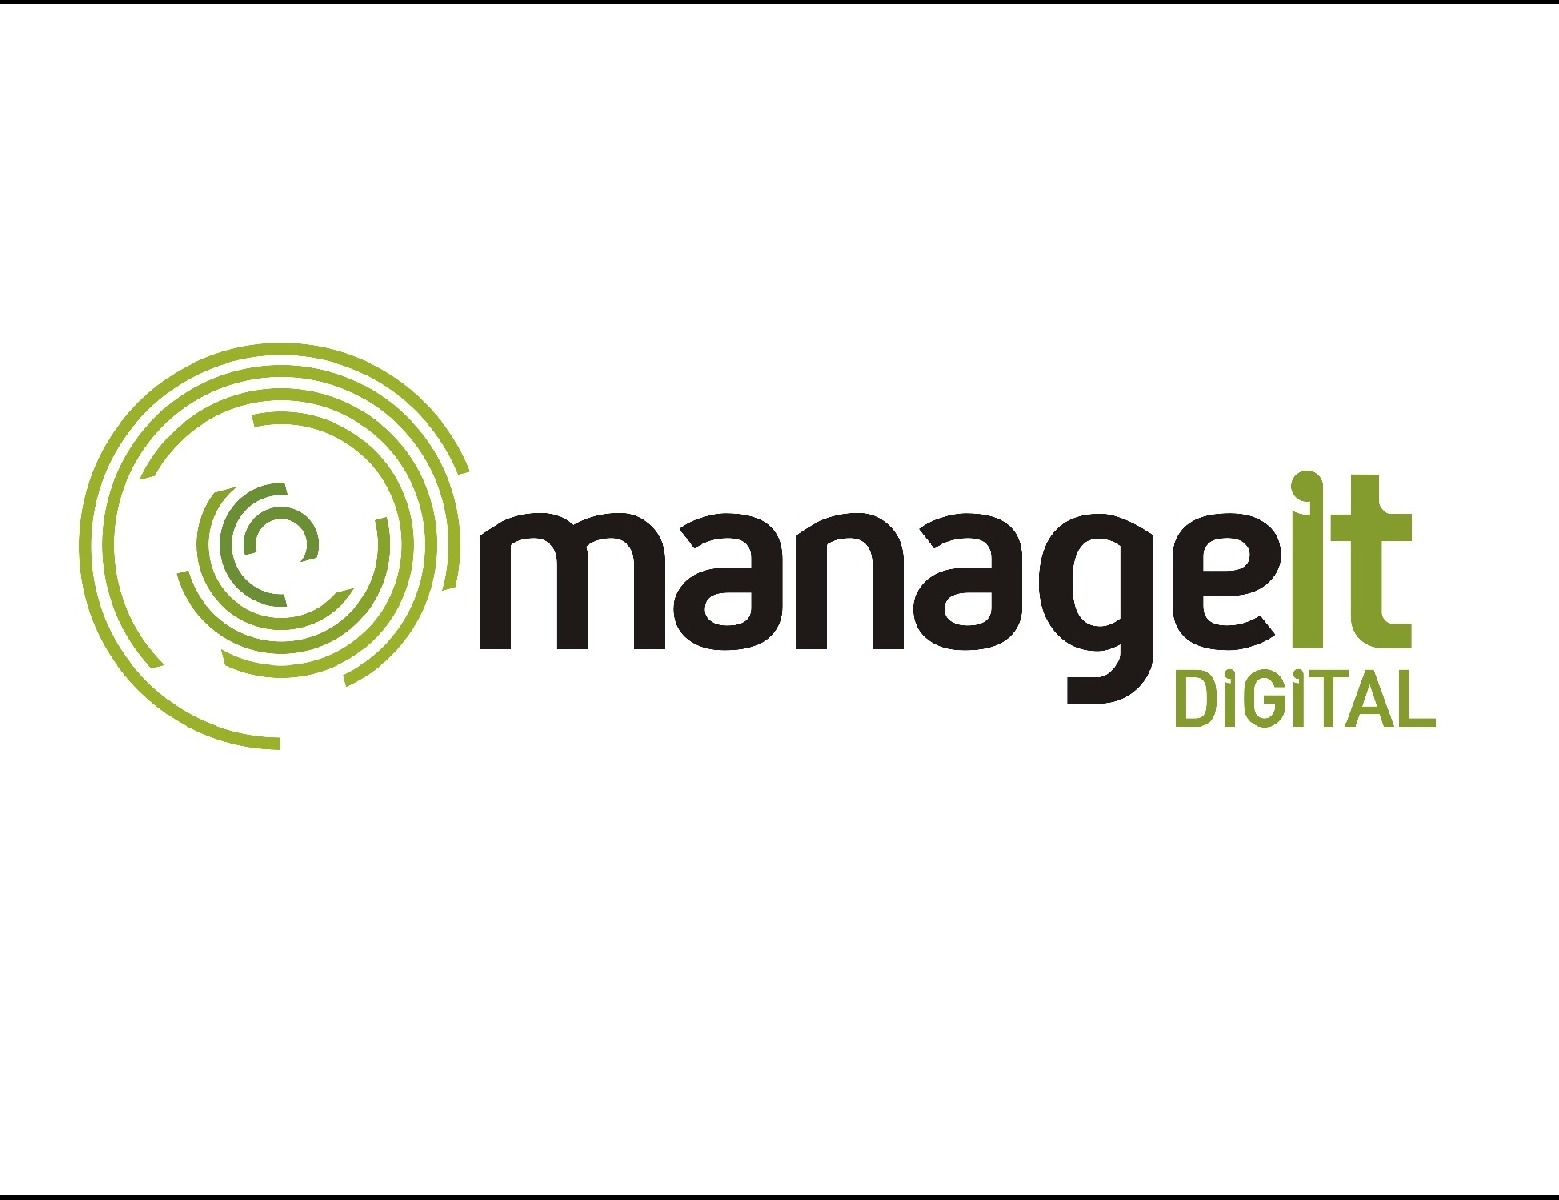 Manage IT Digital Ltd